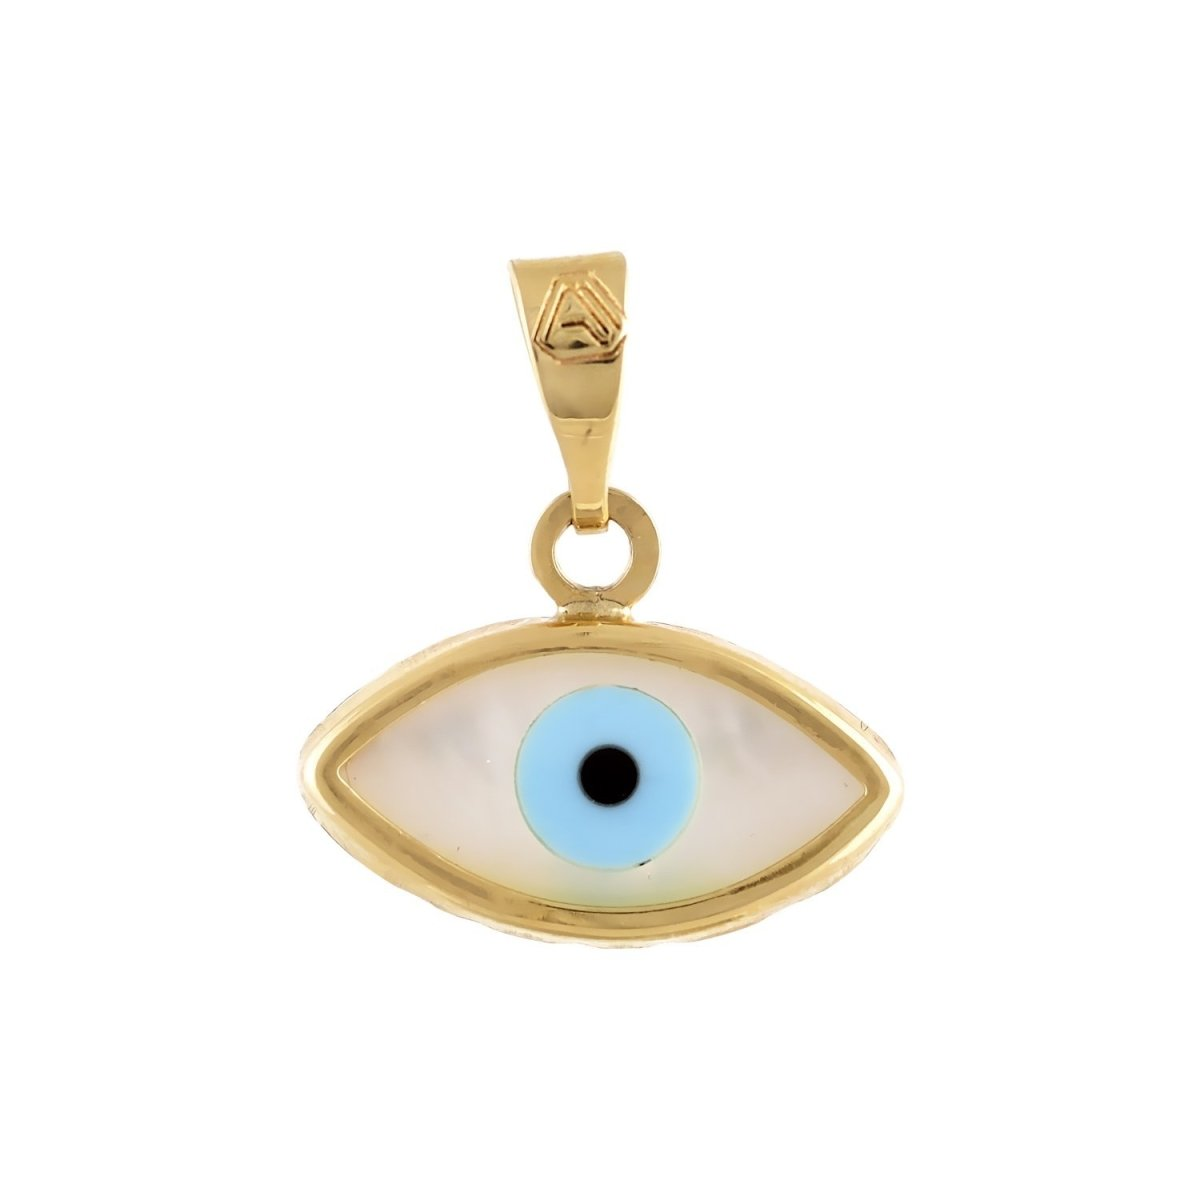 Eyelet M115 Gold with Fildisi K9 - Goldy Jewelry Store